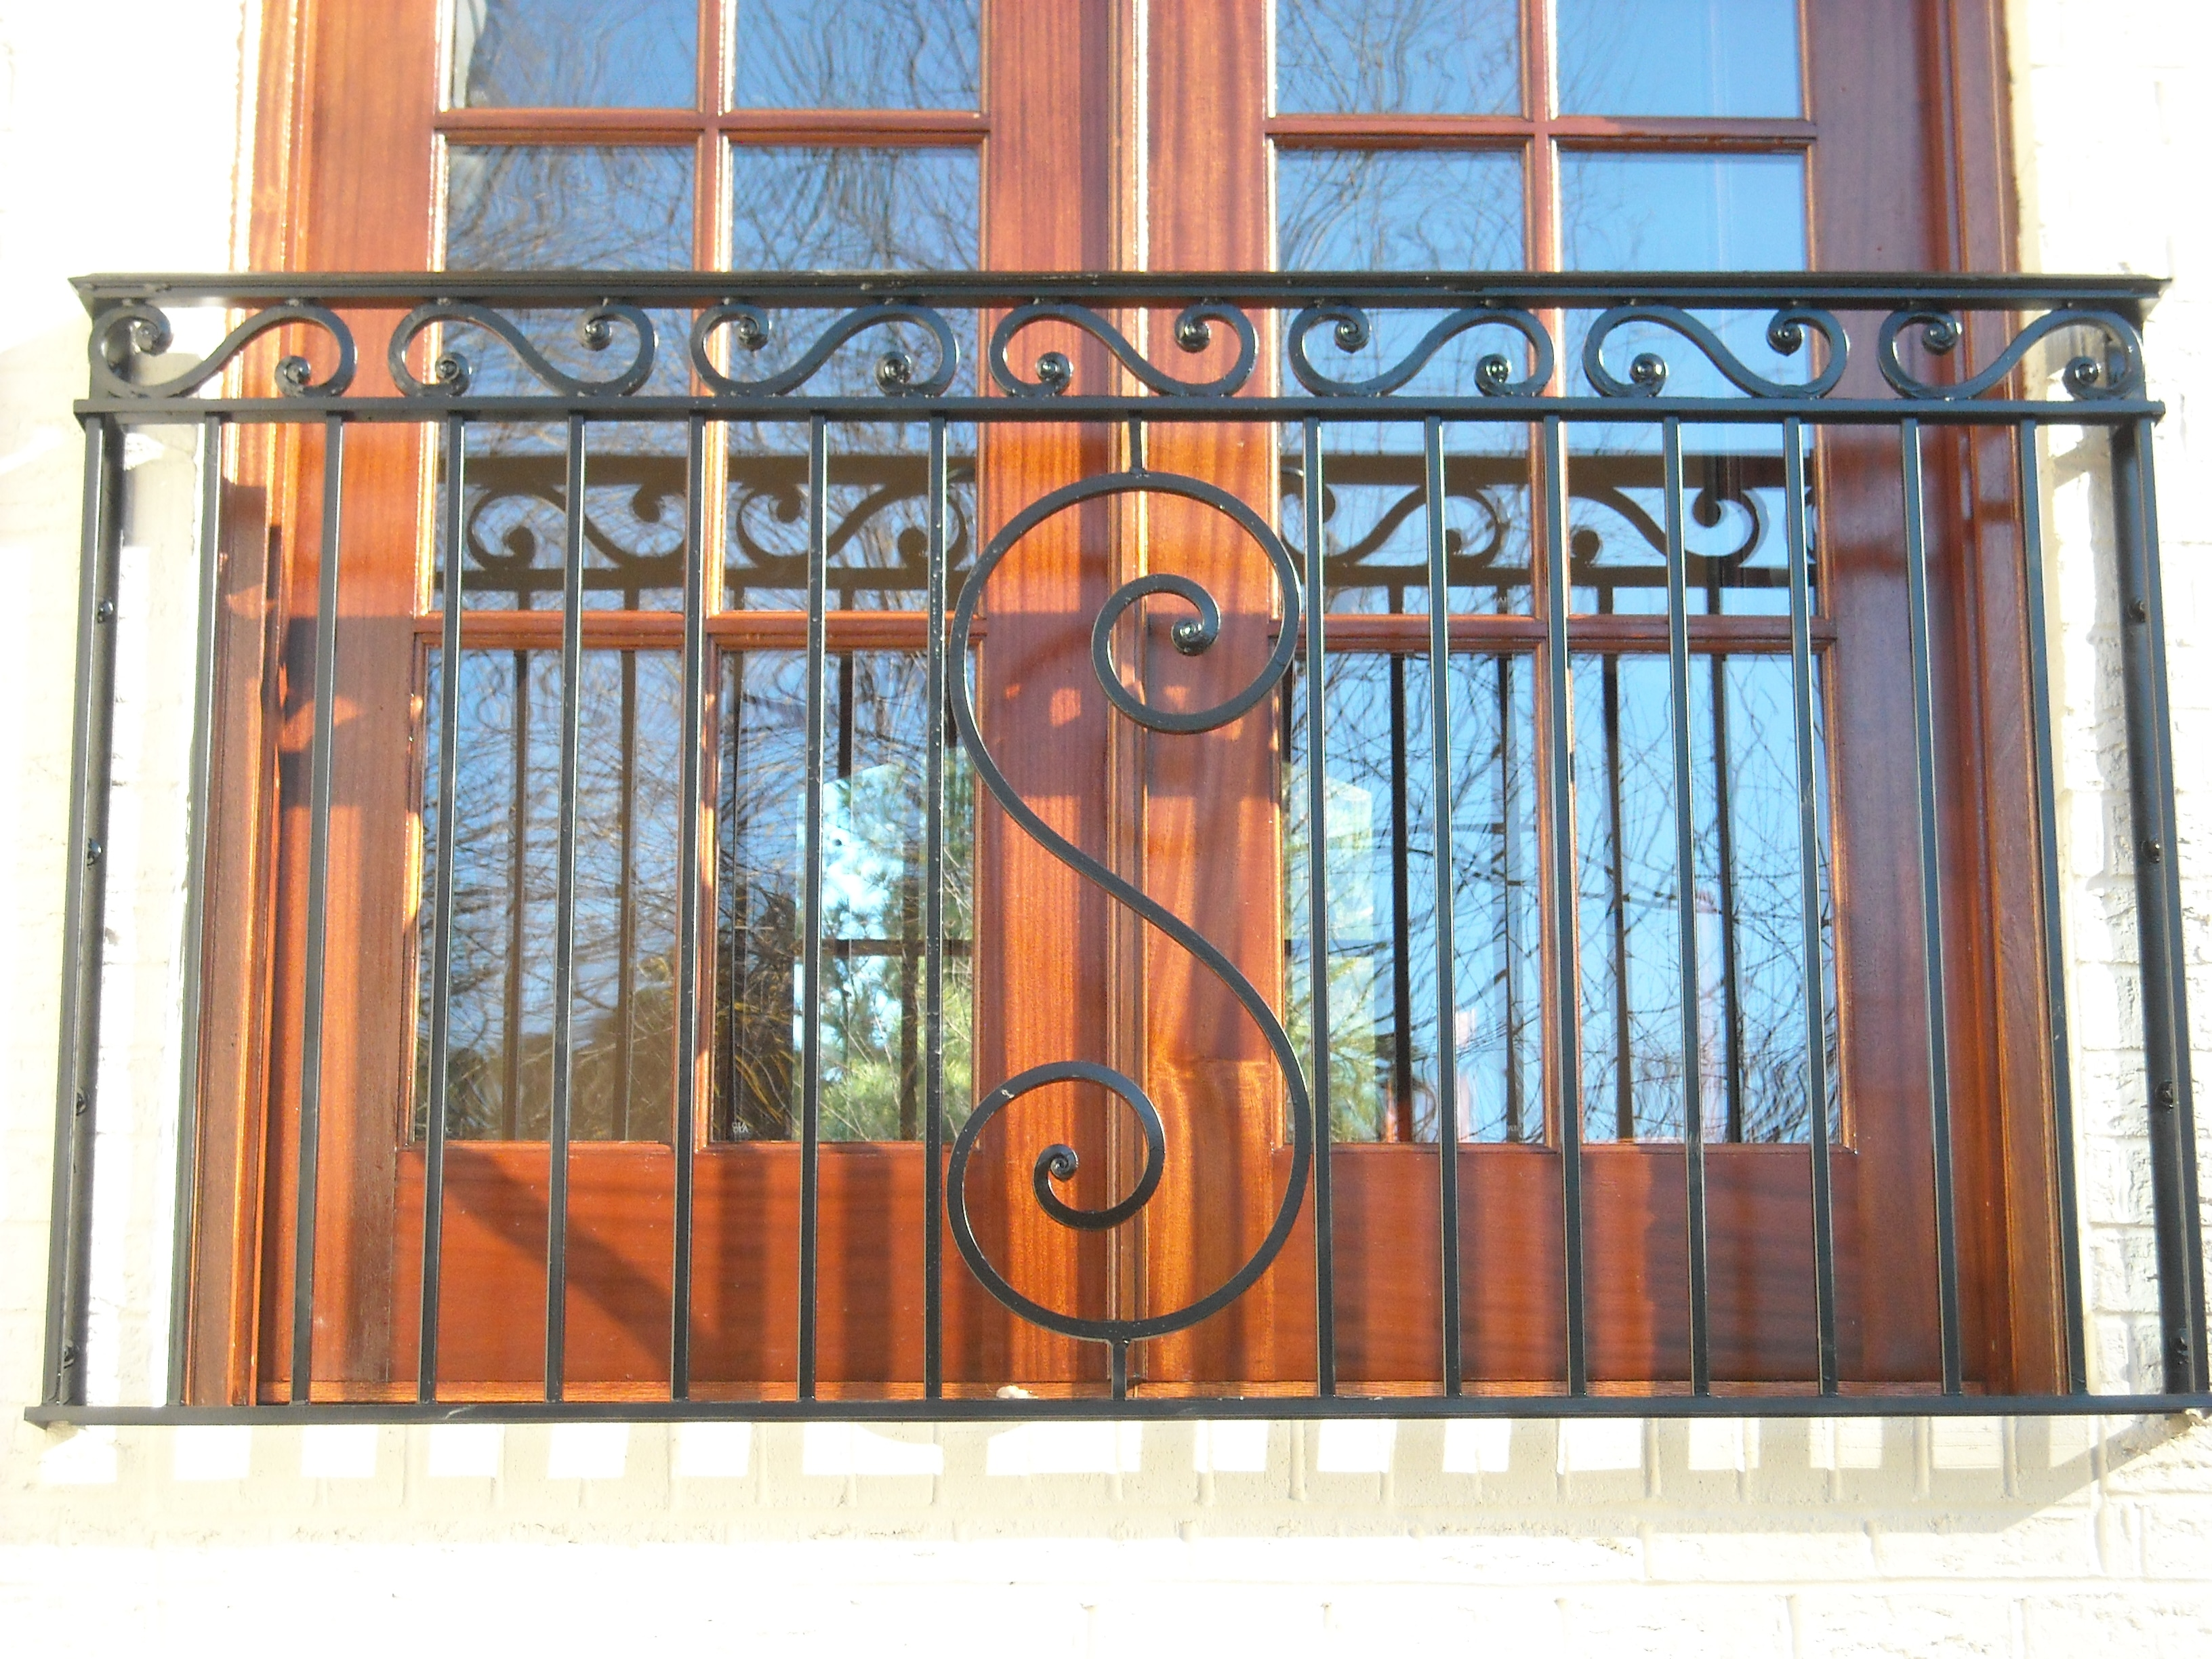 Railing on a balcony image